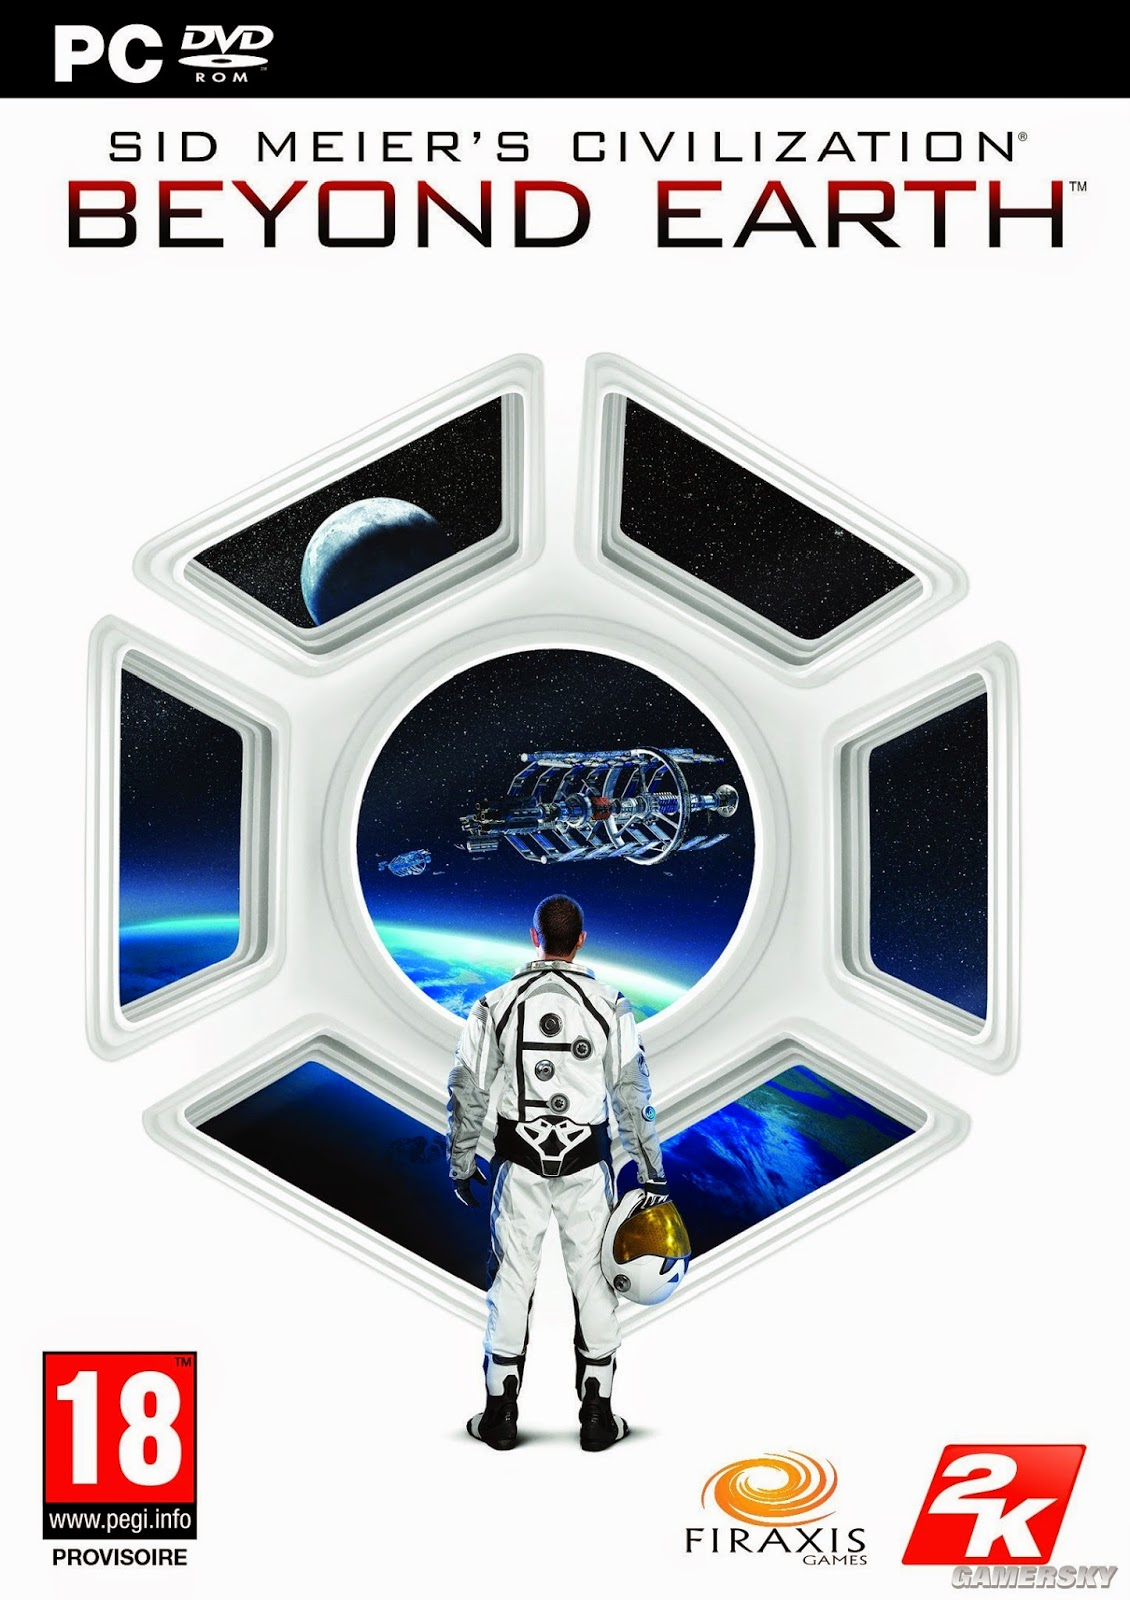 Sid Meier's Civilization Beyond Earth PC Cover Caratula